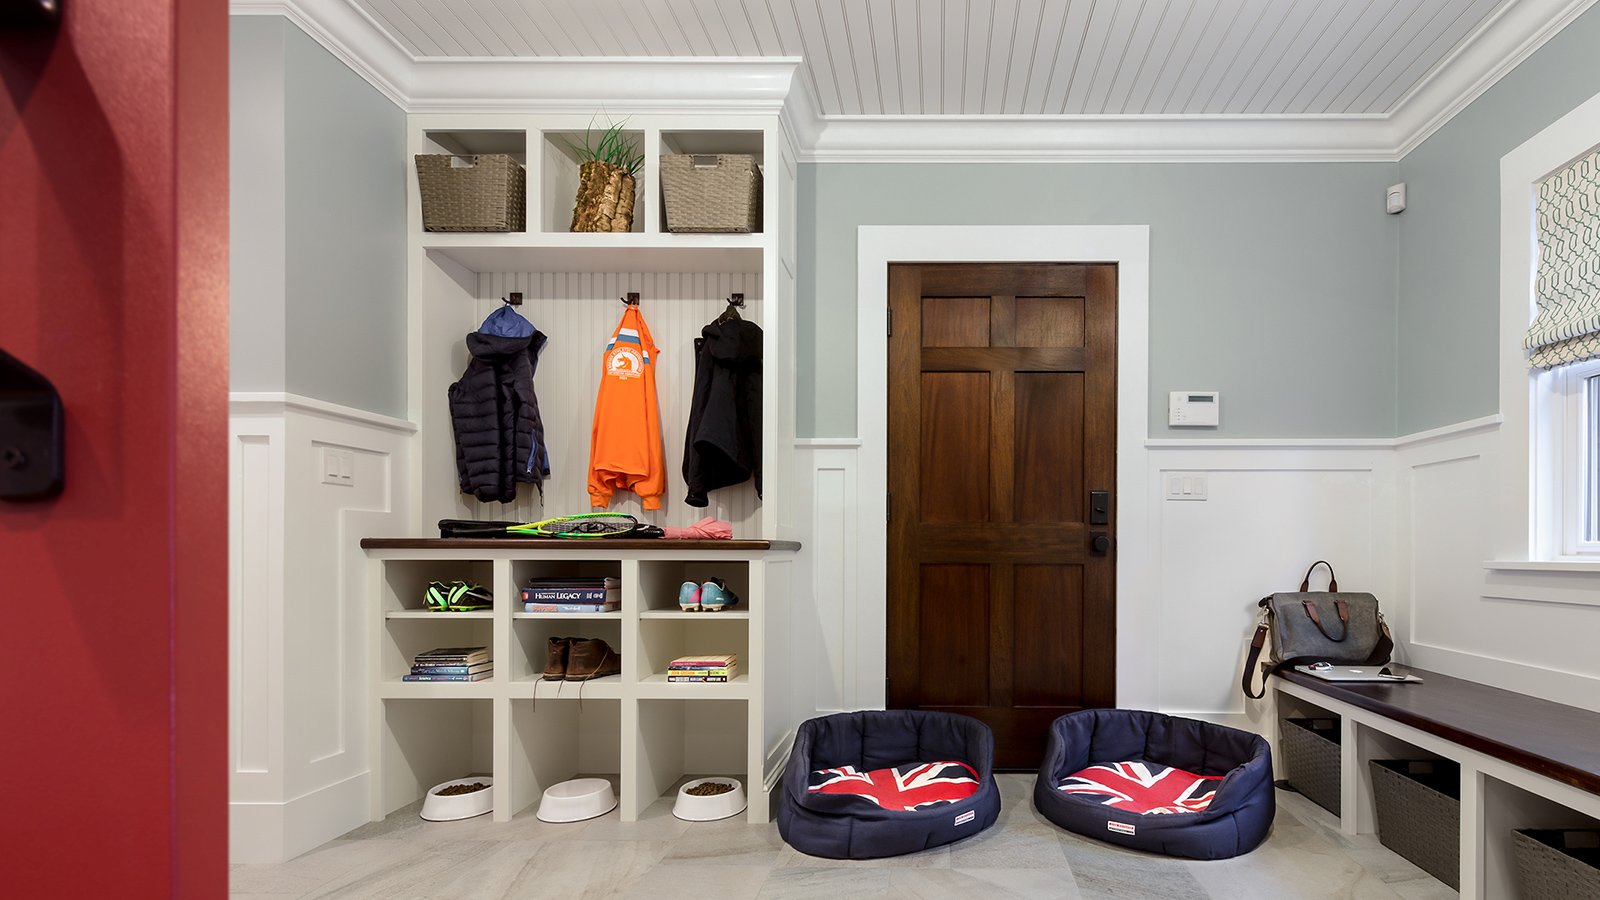 CEH_mudroom2